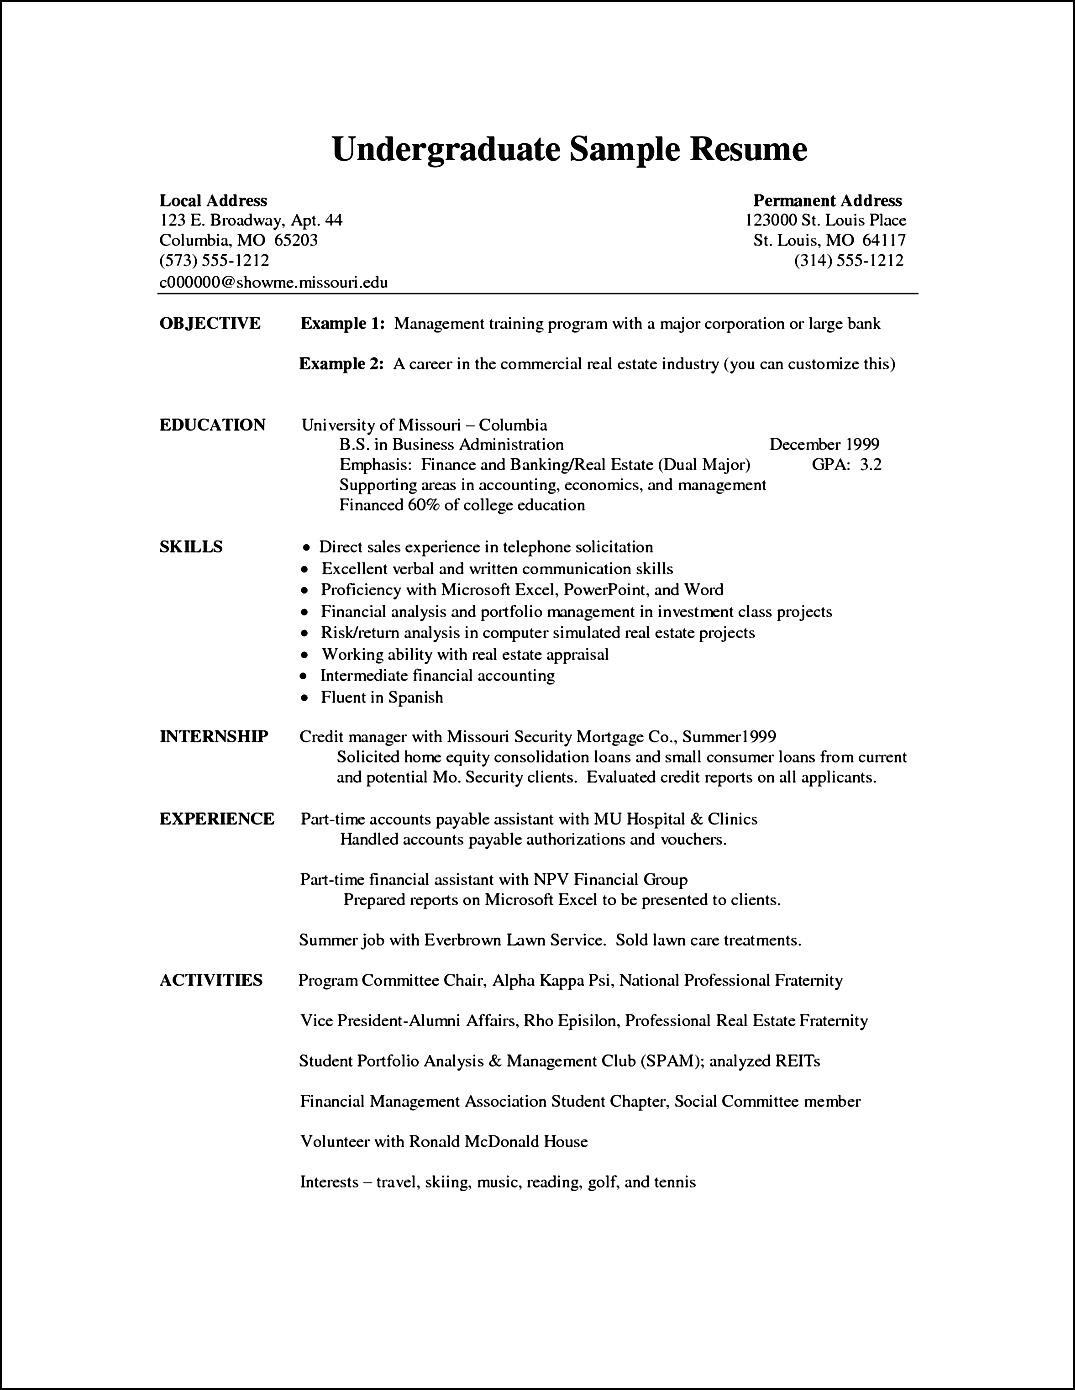 Undergraduate Resume Sample Pdf Undergraduate Curriculum Vitae Example Free Samples